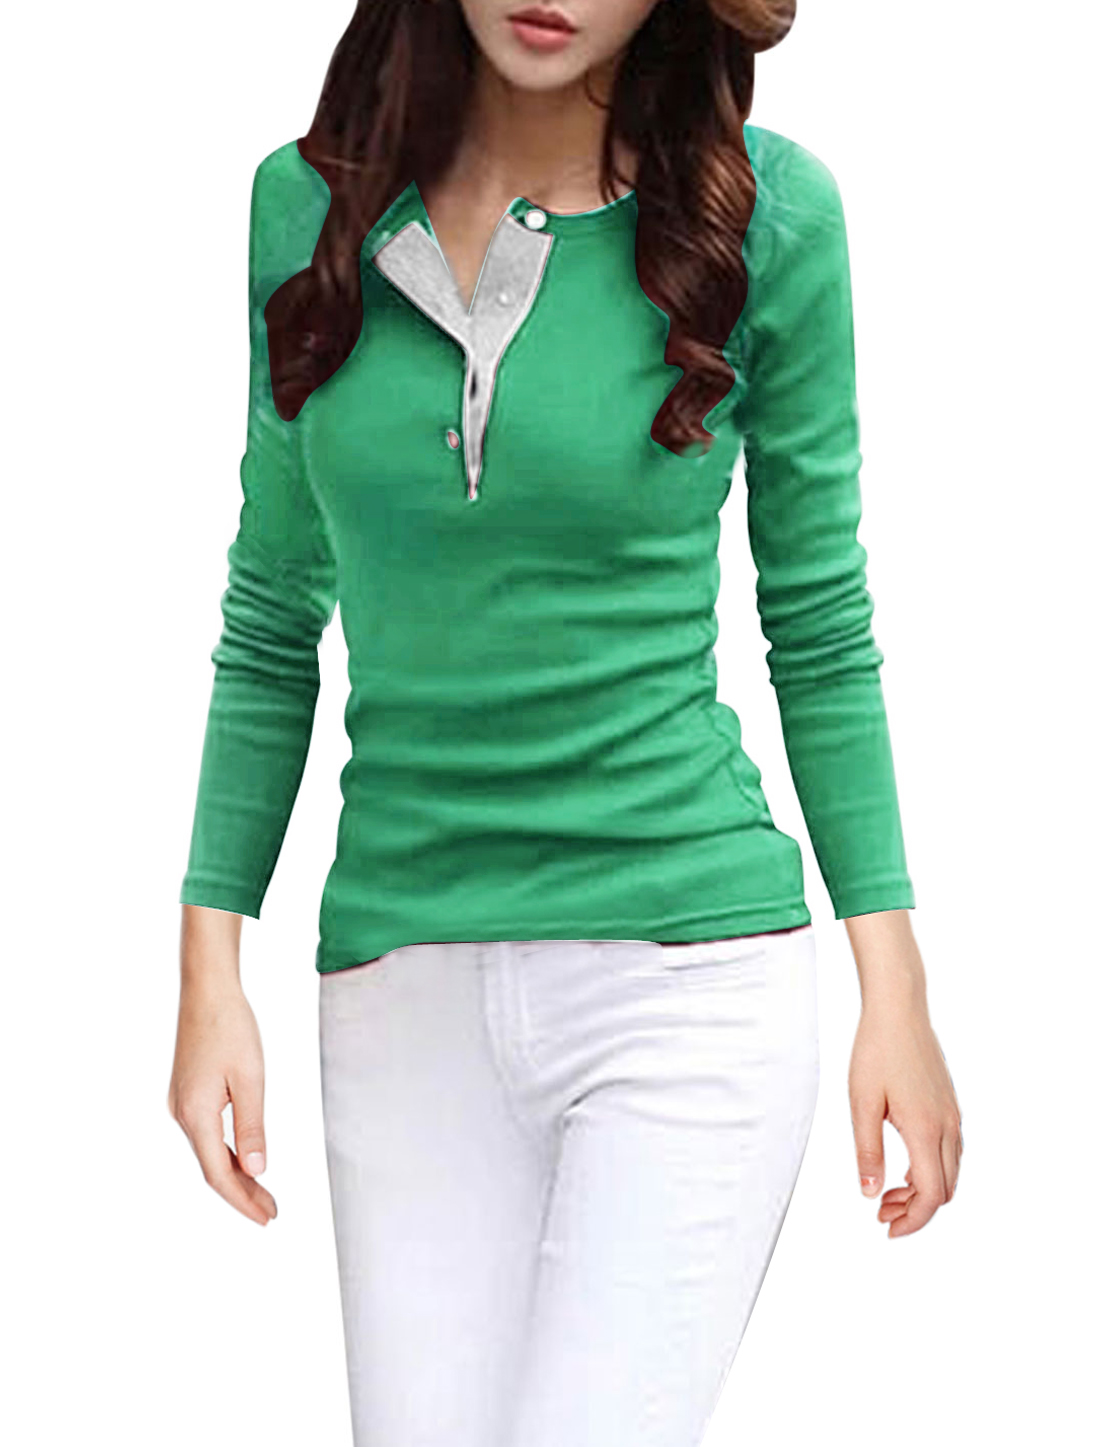 Full Sleeves Soft Lining Green Shirts for Woman M